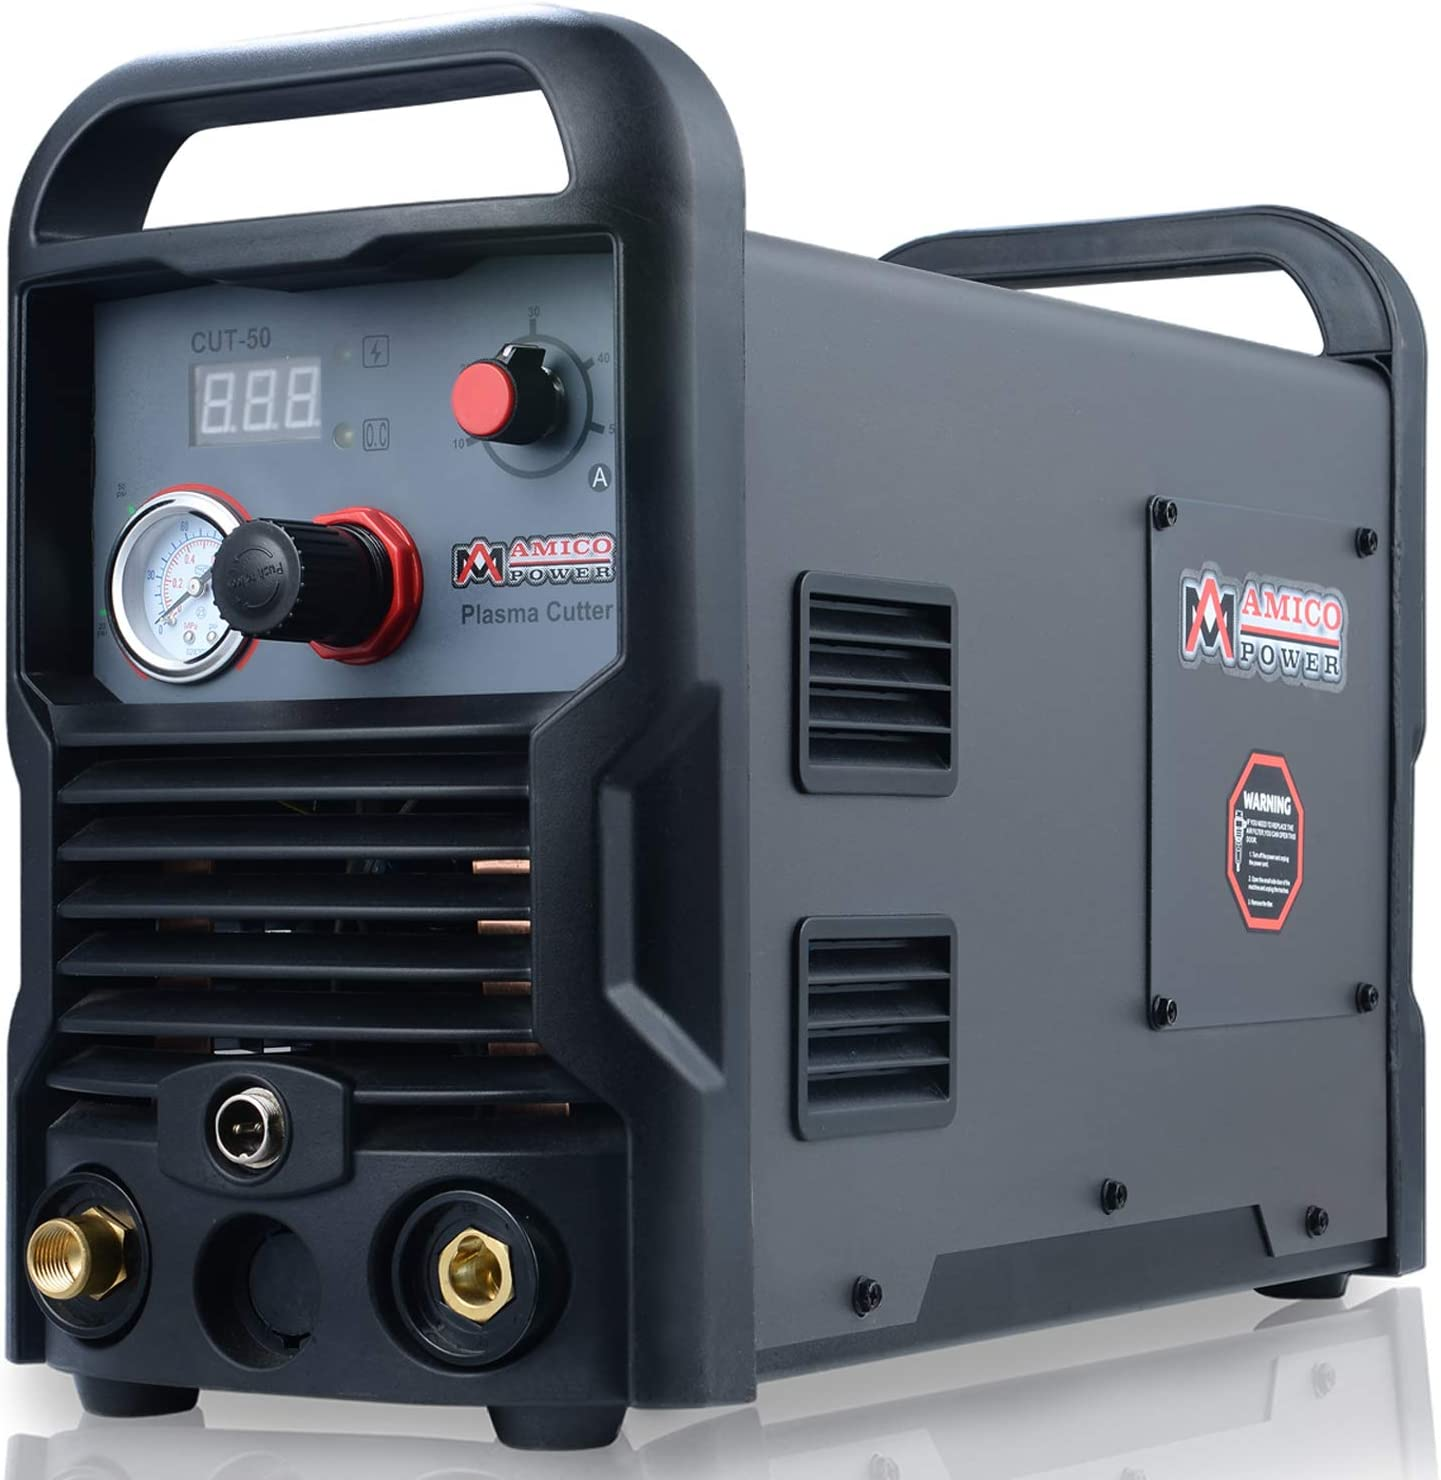 AMICO CUT-50 Plasma Cutter – Best for Professionals